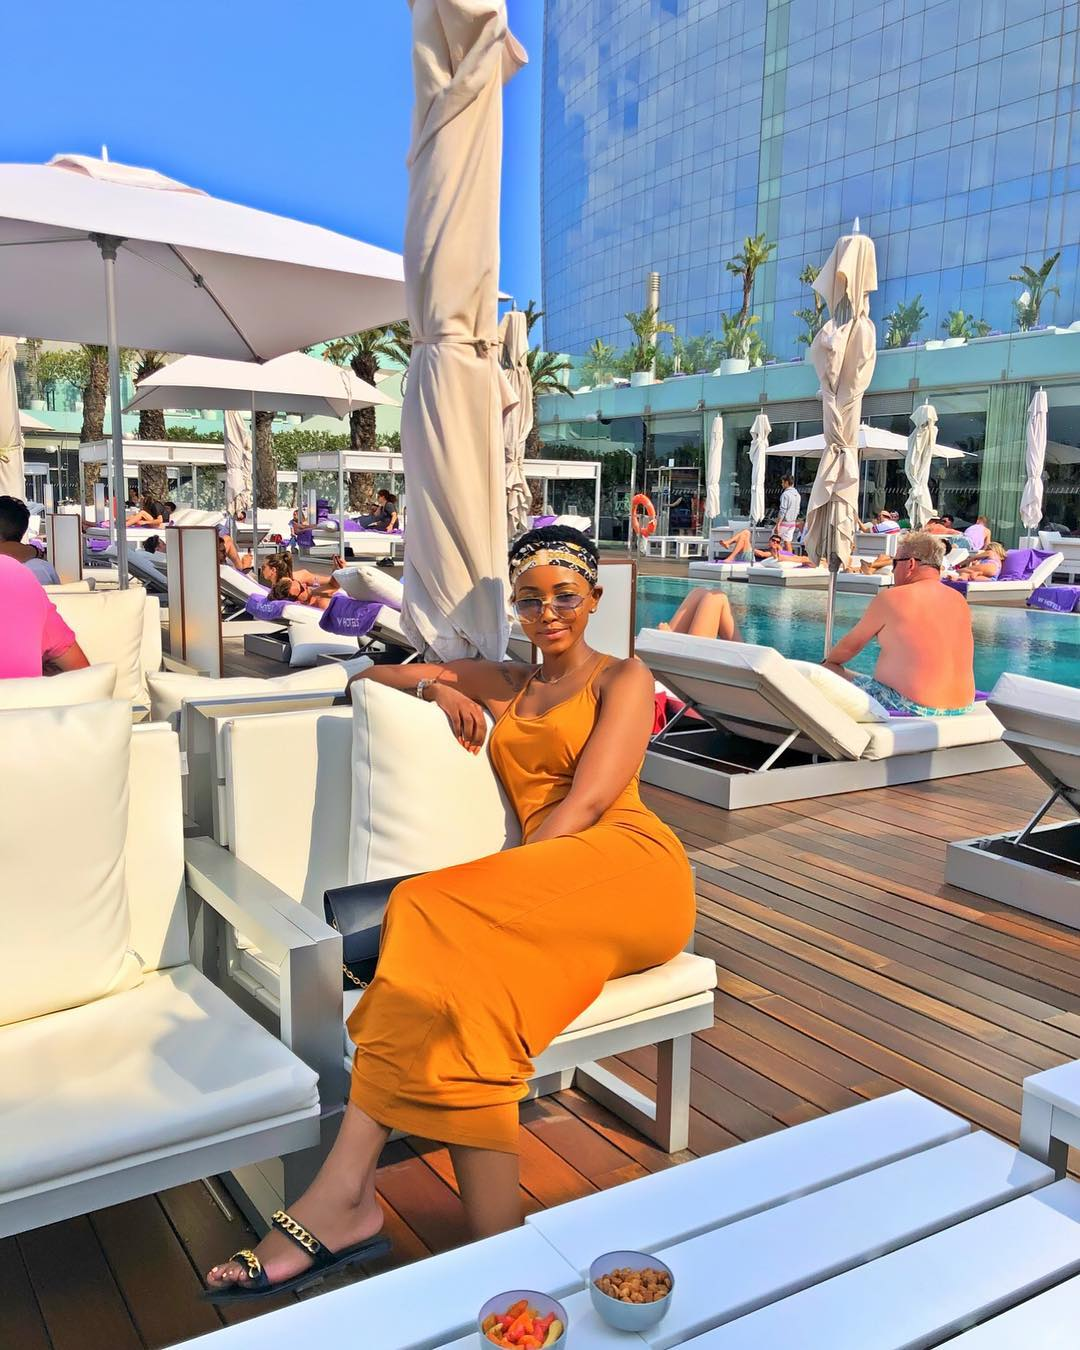 Huddah Monroe having a good time in Barcelona, Spain. Notice the old men in the background.